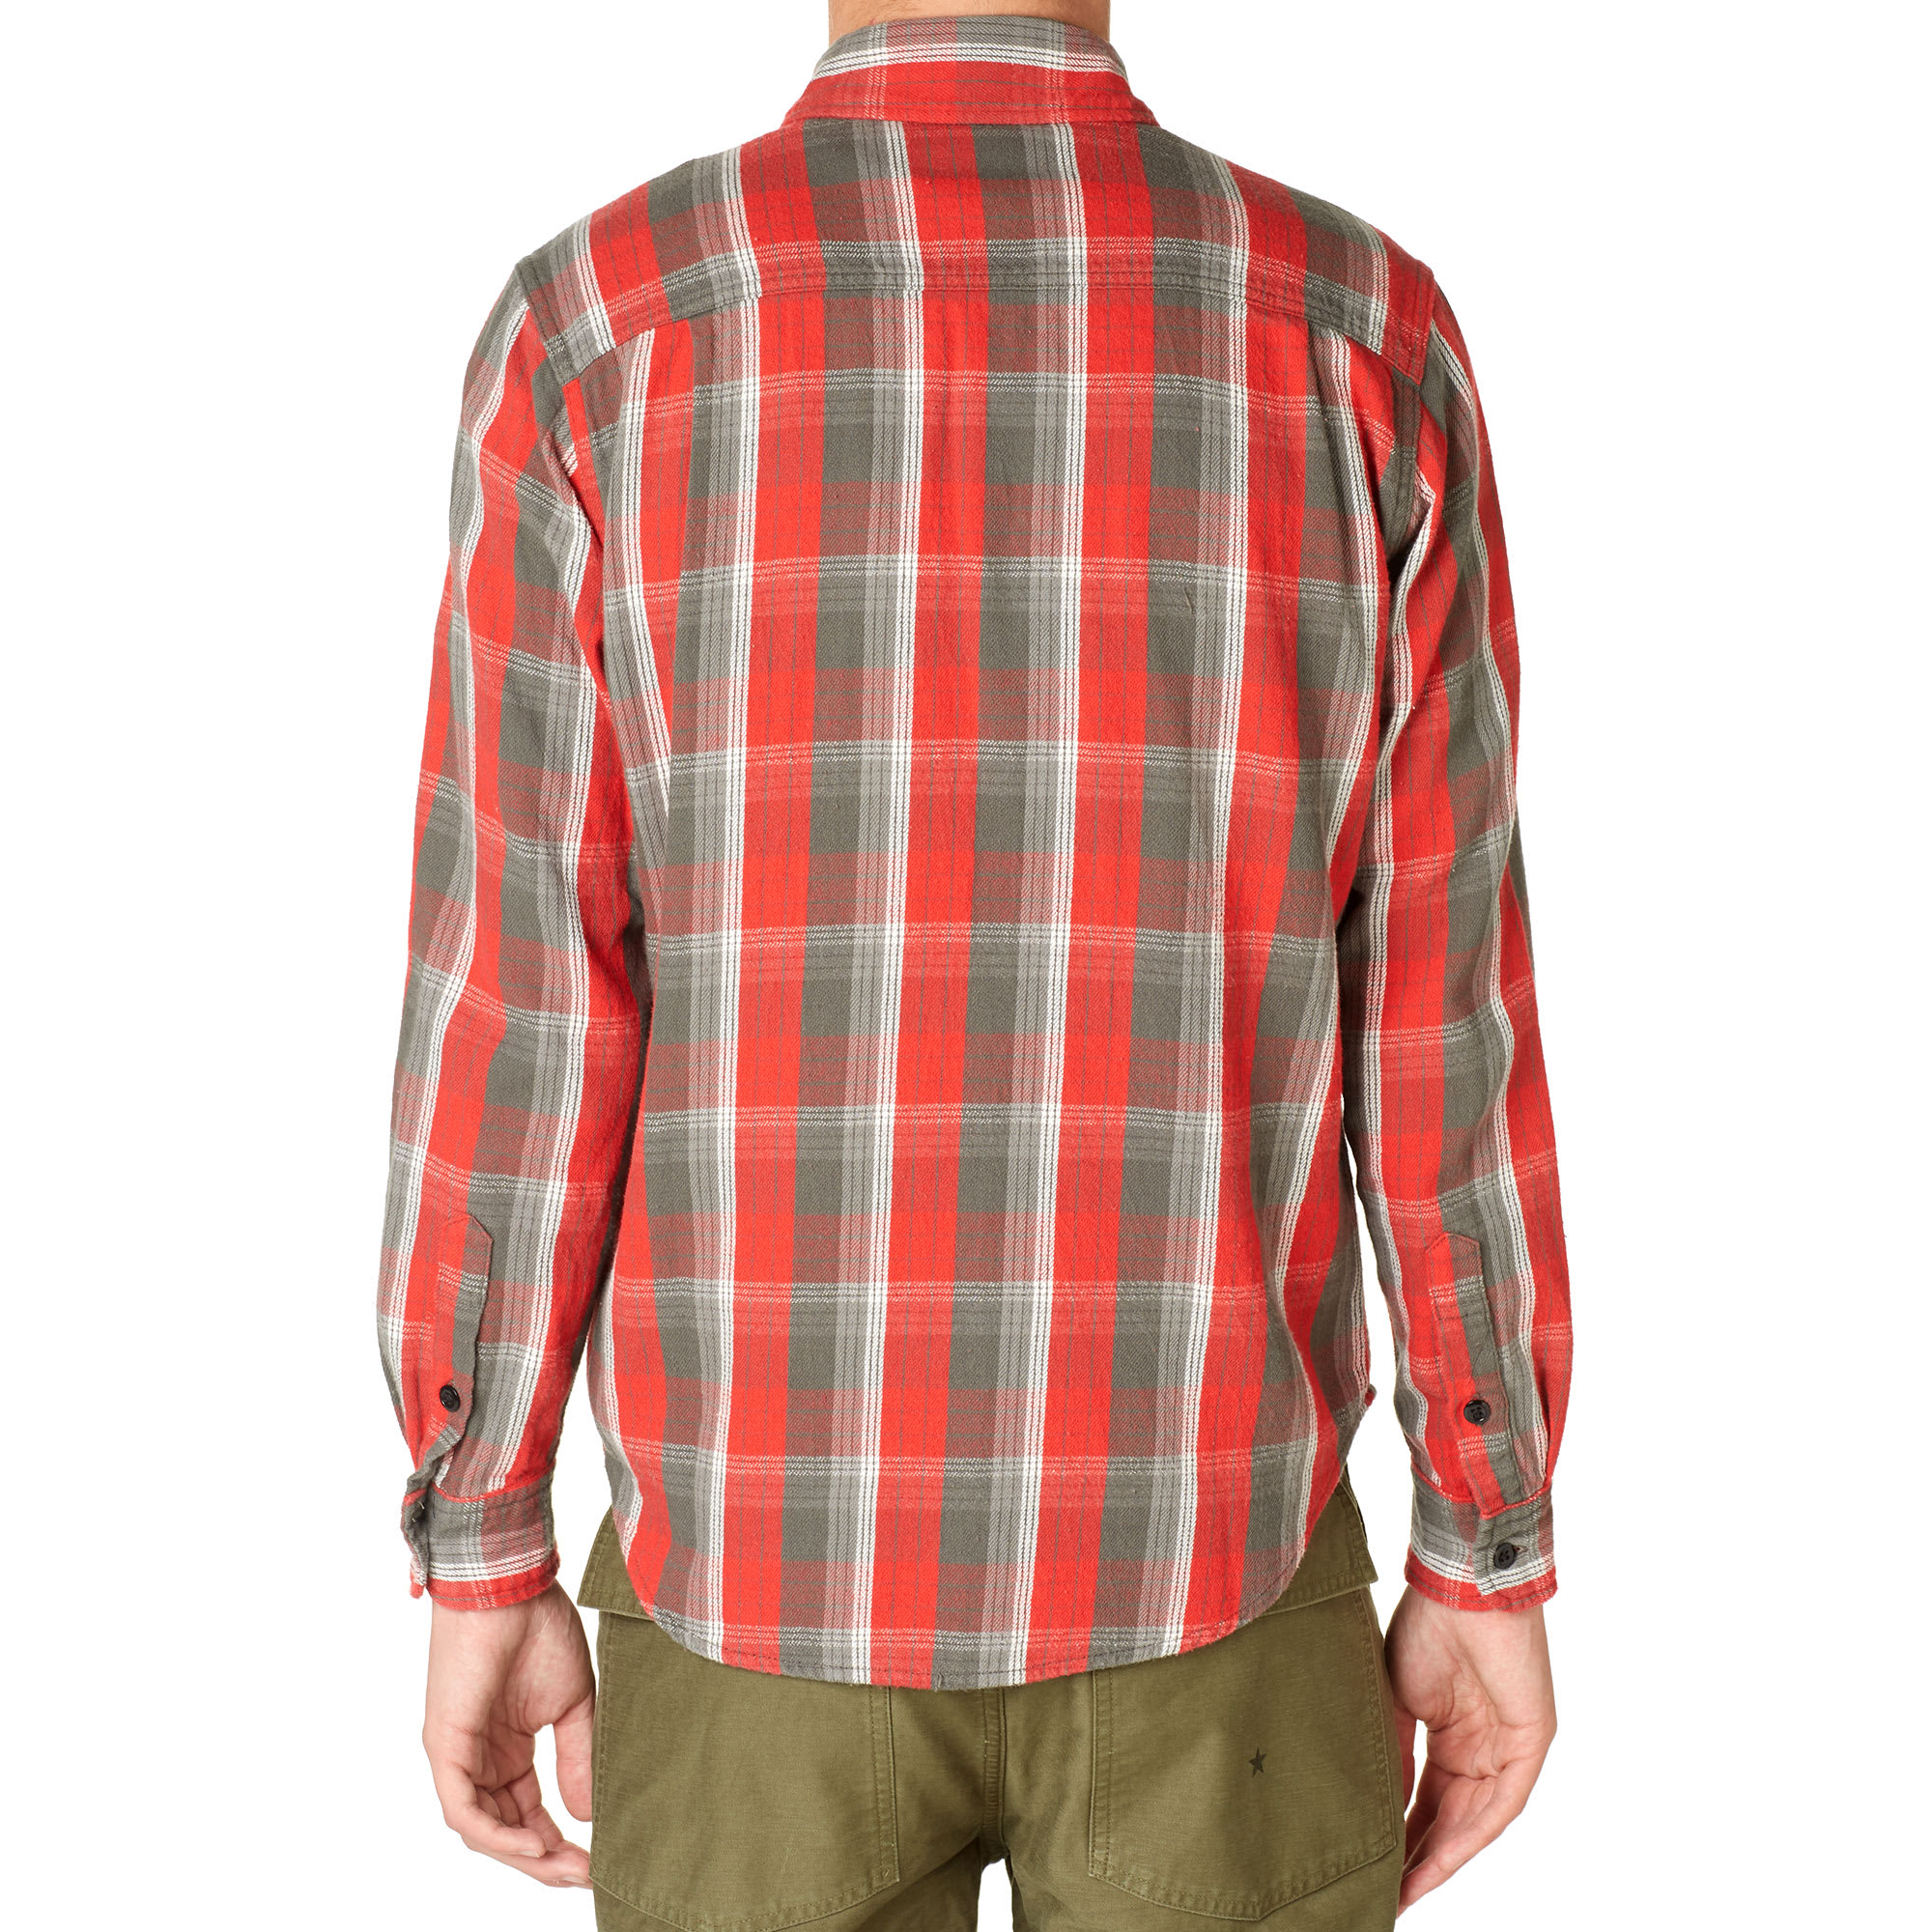 downloadsolutionspa5tr.gq: flannel sweater. From The Community. Amazon Try Prime All flannel red girls polyester shirt terminator shirts for women sleeveless Flawerwumen Womens Cowl Neck Sweatshirt Fall Plaid Raglan Long Sweatshirts Oversized Long Sleeve Pullover Tops. by Flawerwumen.